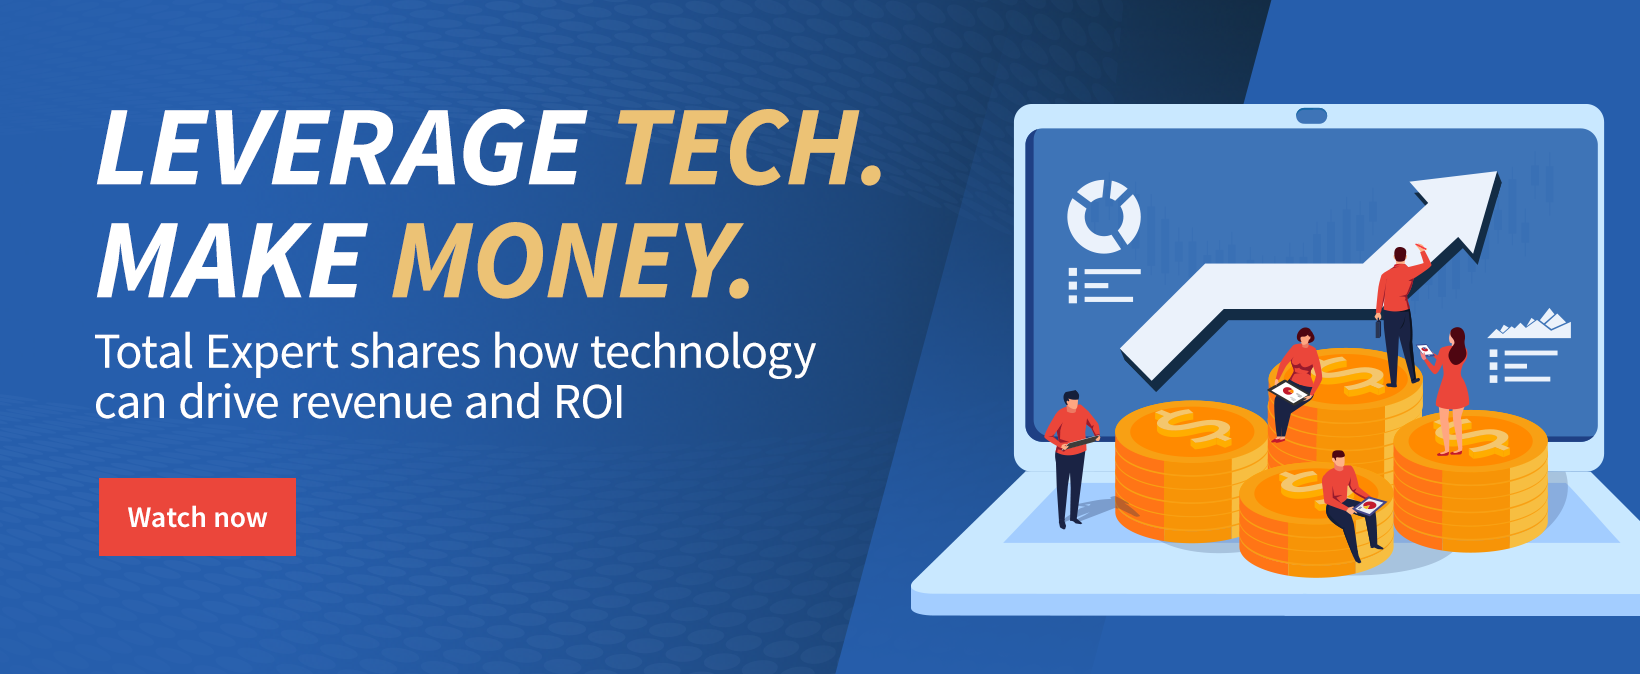 Leverage tech. Make money.